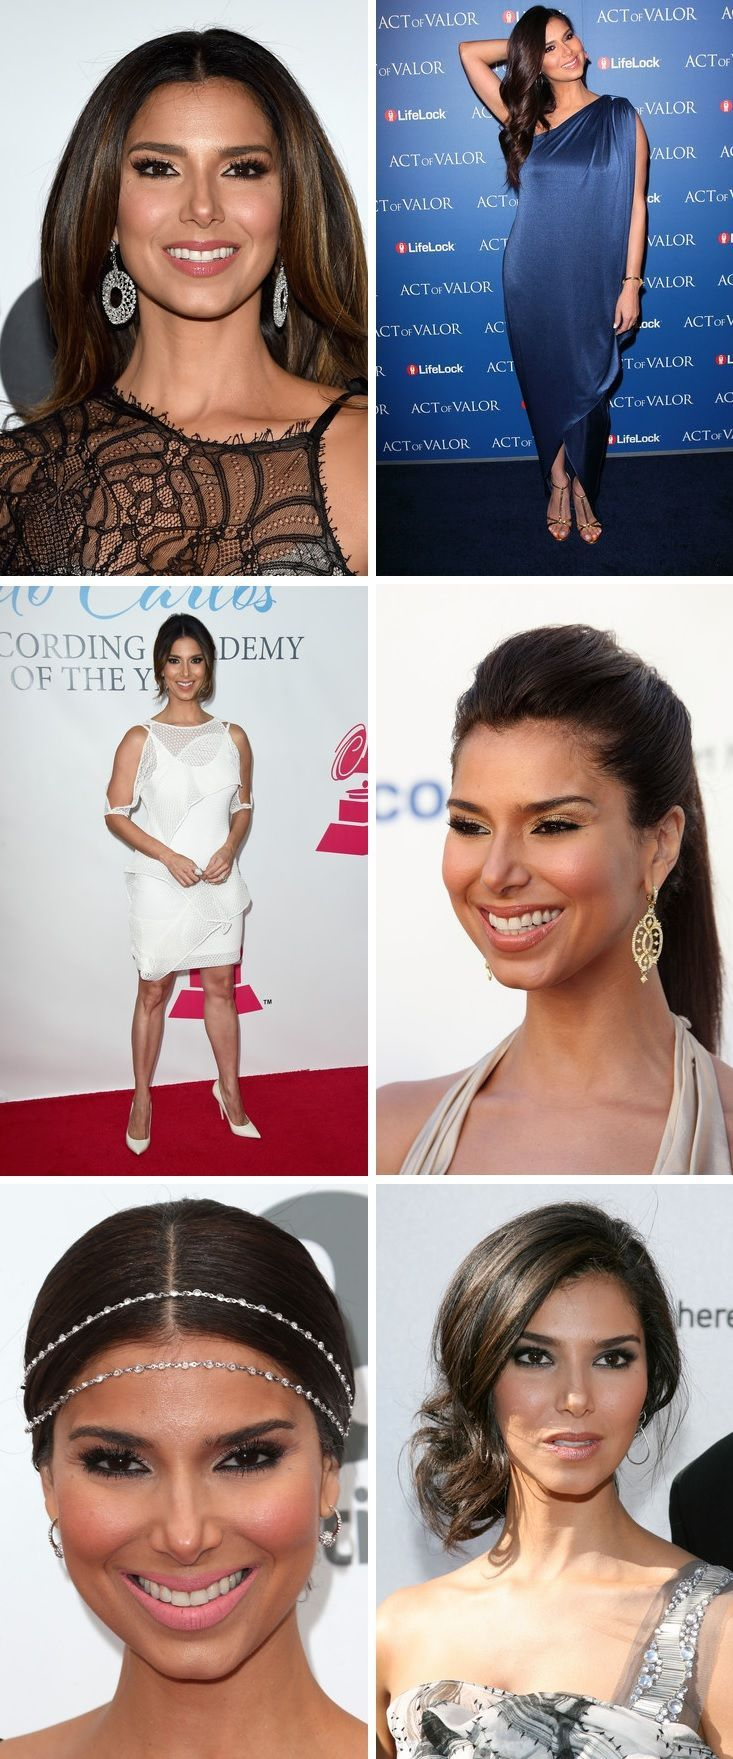 Roselyn Sanchez Style, Fashion & Looks - Roselyn Sanchez's best hairstyles, gowns, and outfits.